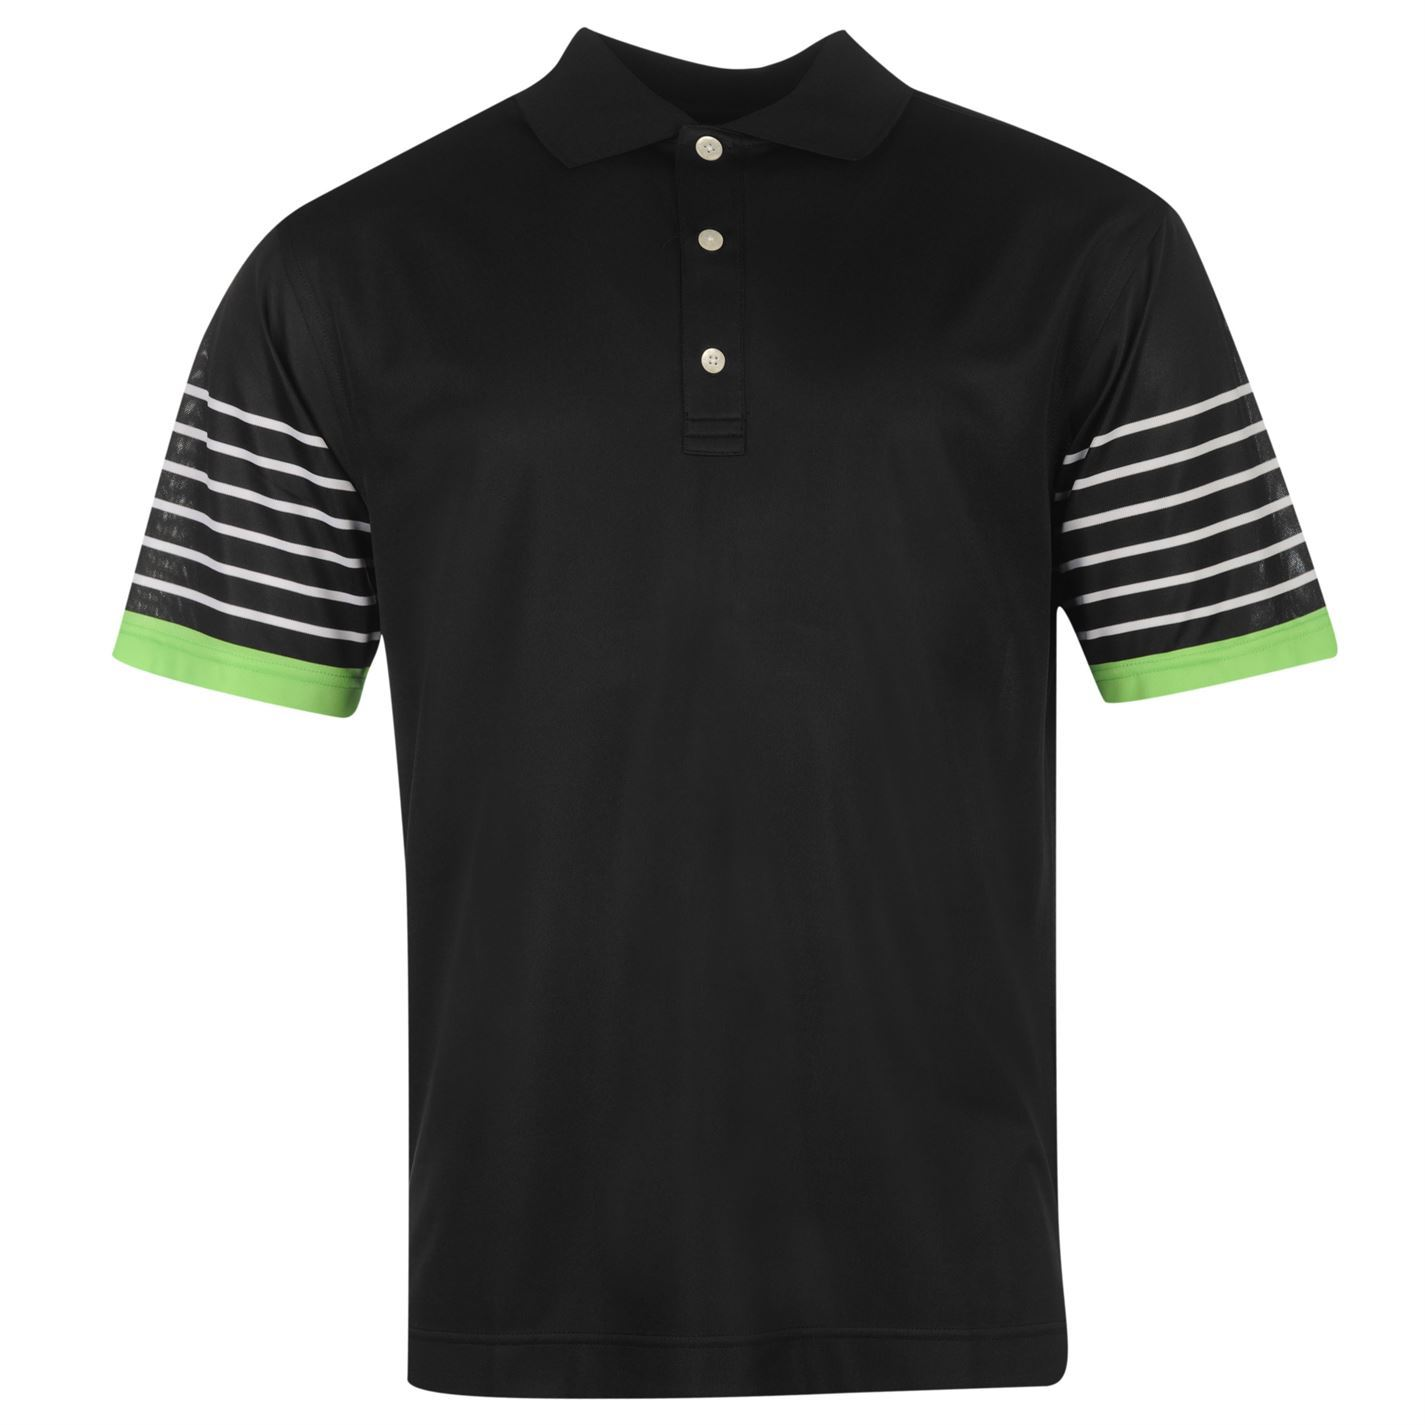 Black t shirt white collar -  Footjoy Stripe Sleeve Golf Polo Shirt Mens Black White Collar T Shirt Top Tee